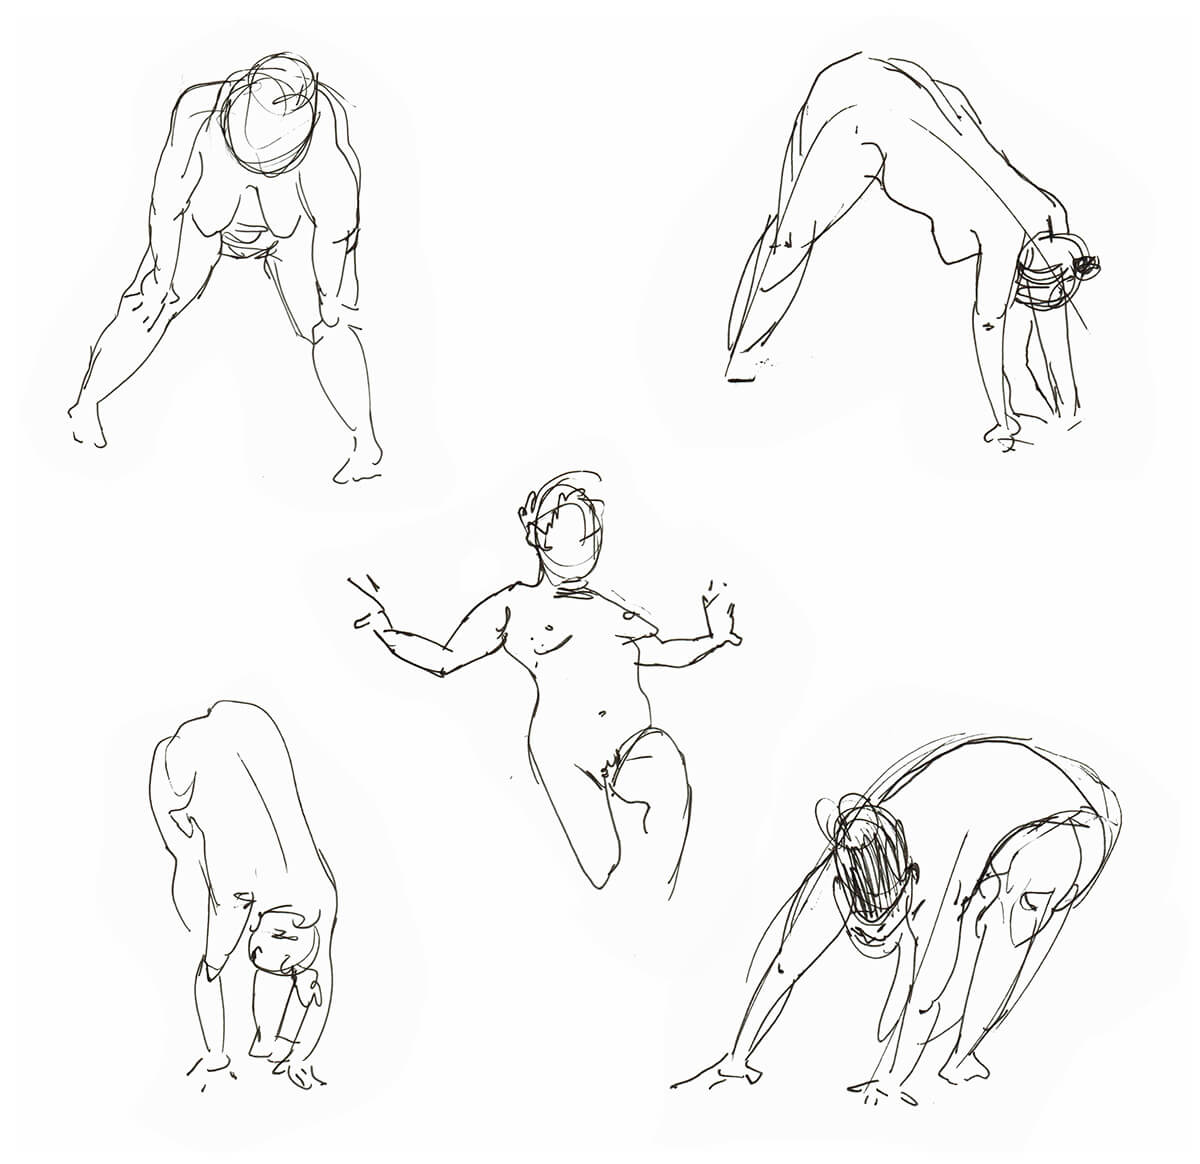 various gesture drawings in pen